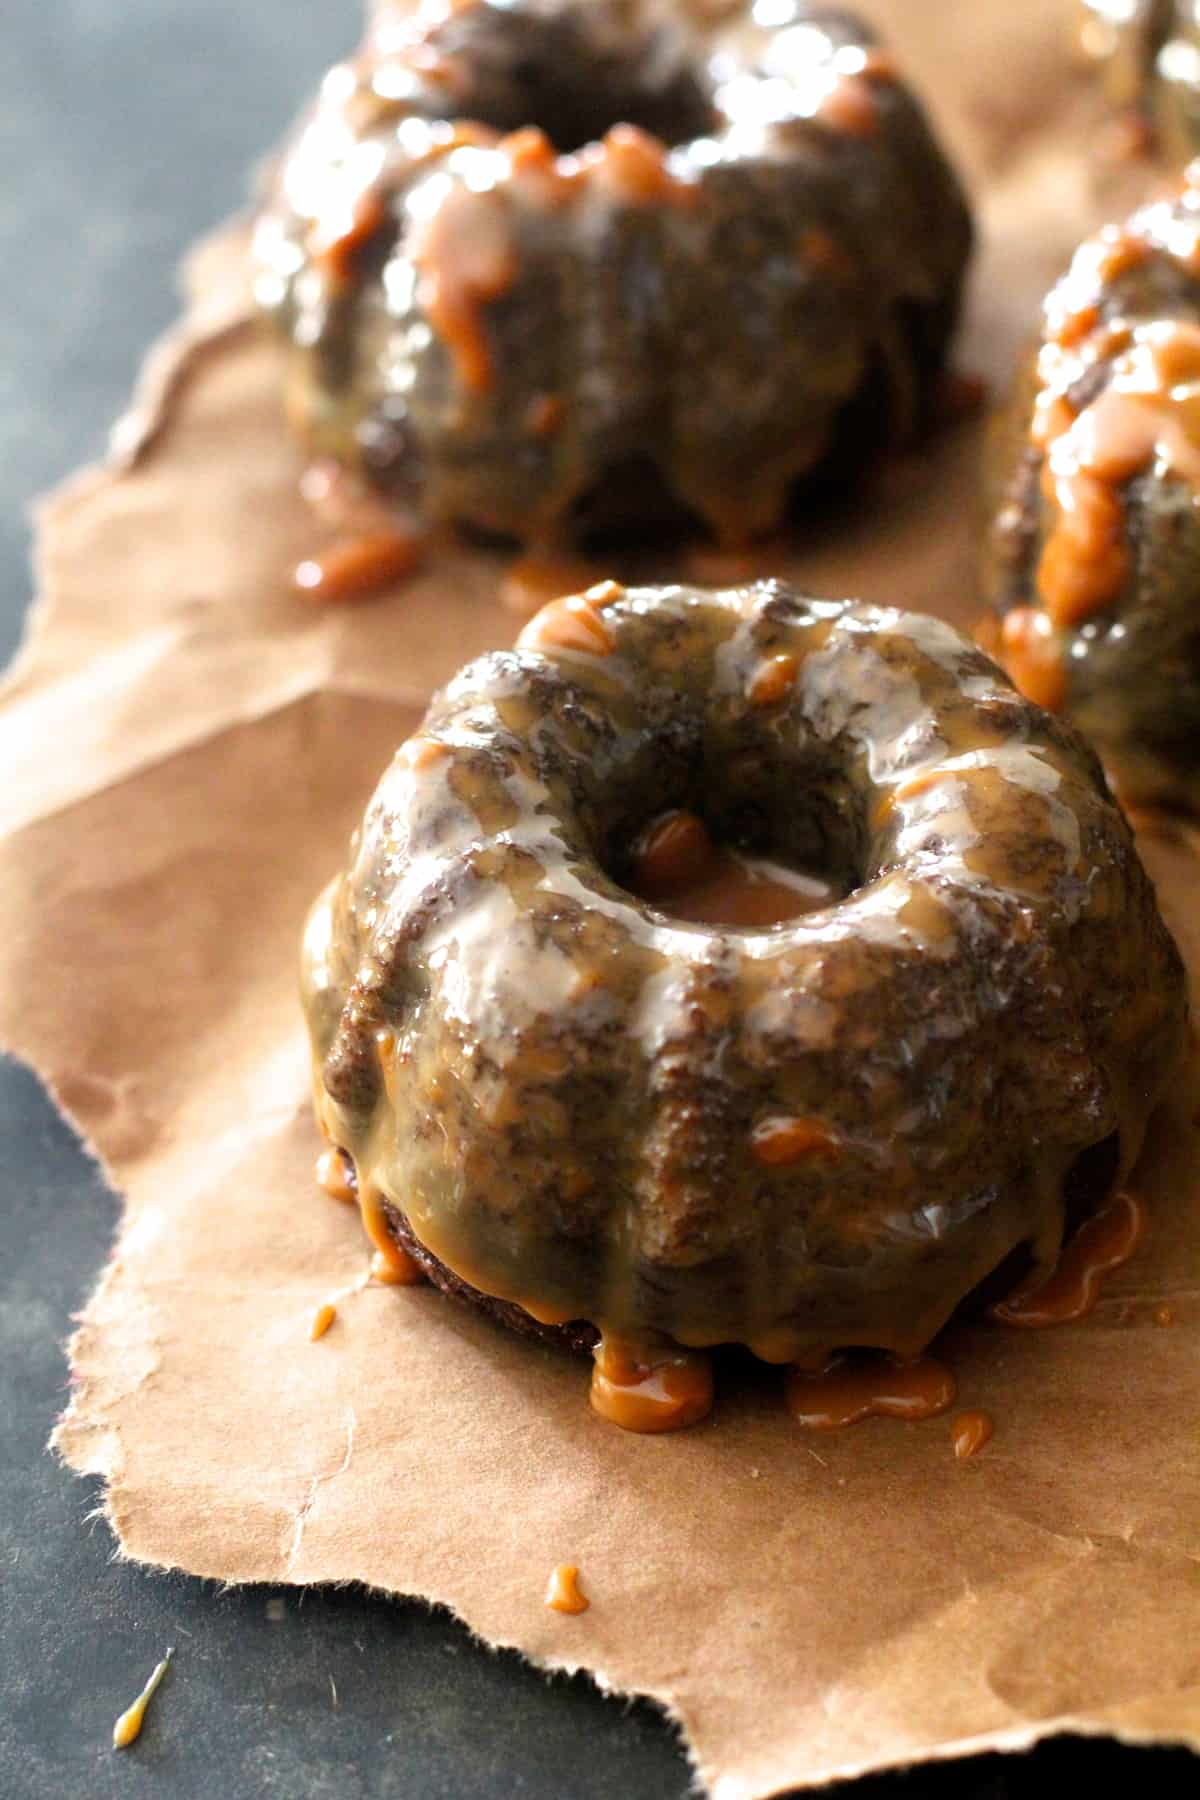 Rich caramel sauce poured over dense, fudgy chocolate pound cakes